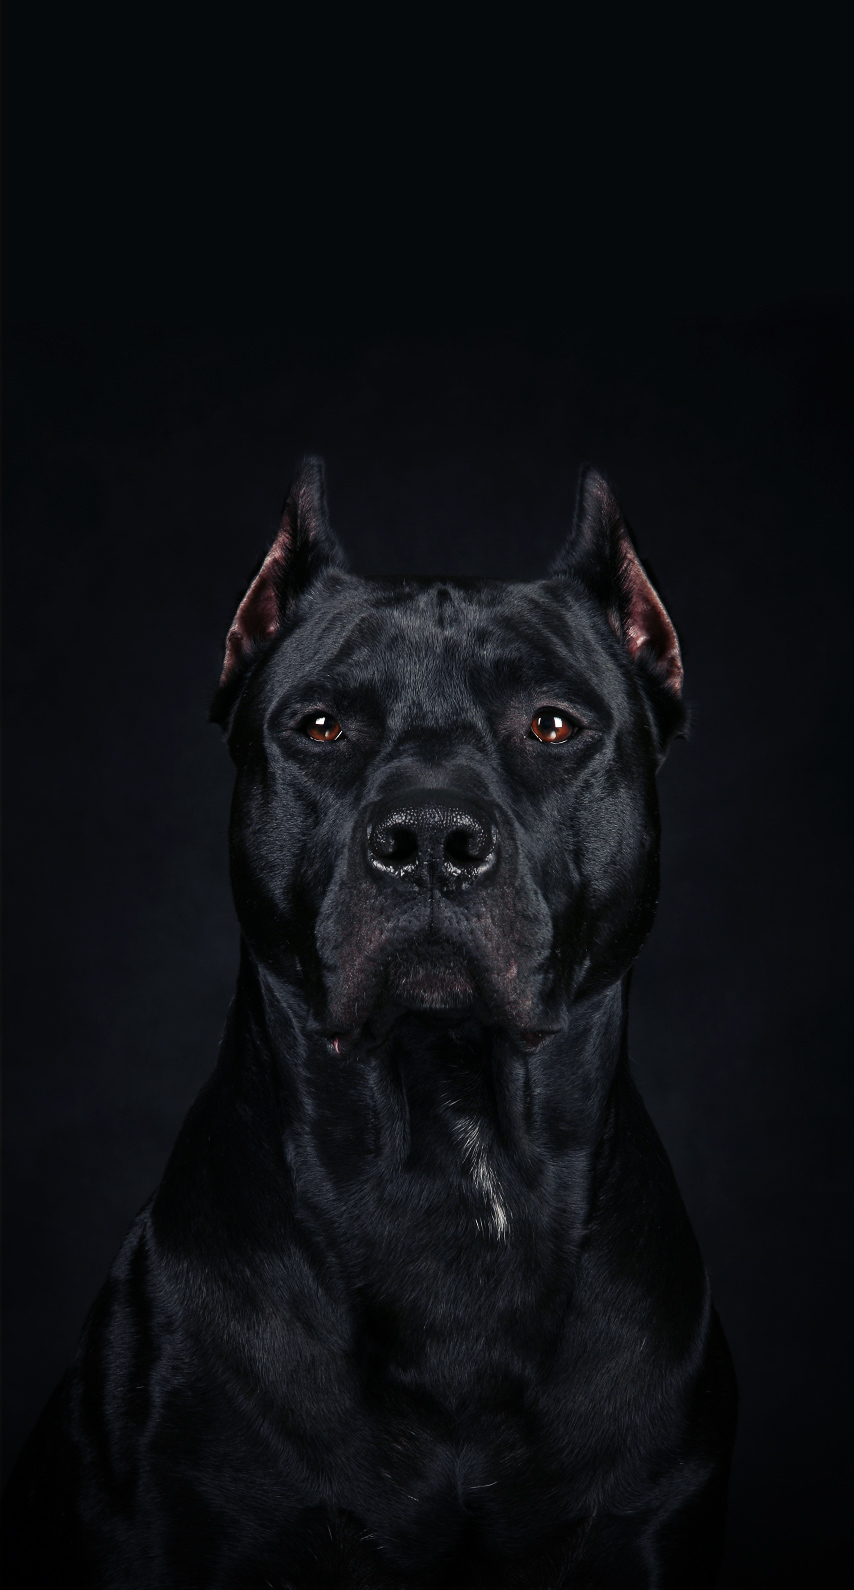 pet, dog, animal, pitbull, no person, one, portrait, mammal, halloween, vicious, studio, isolated, young